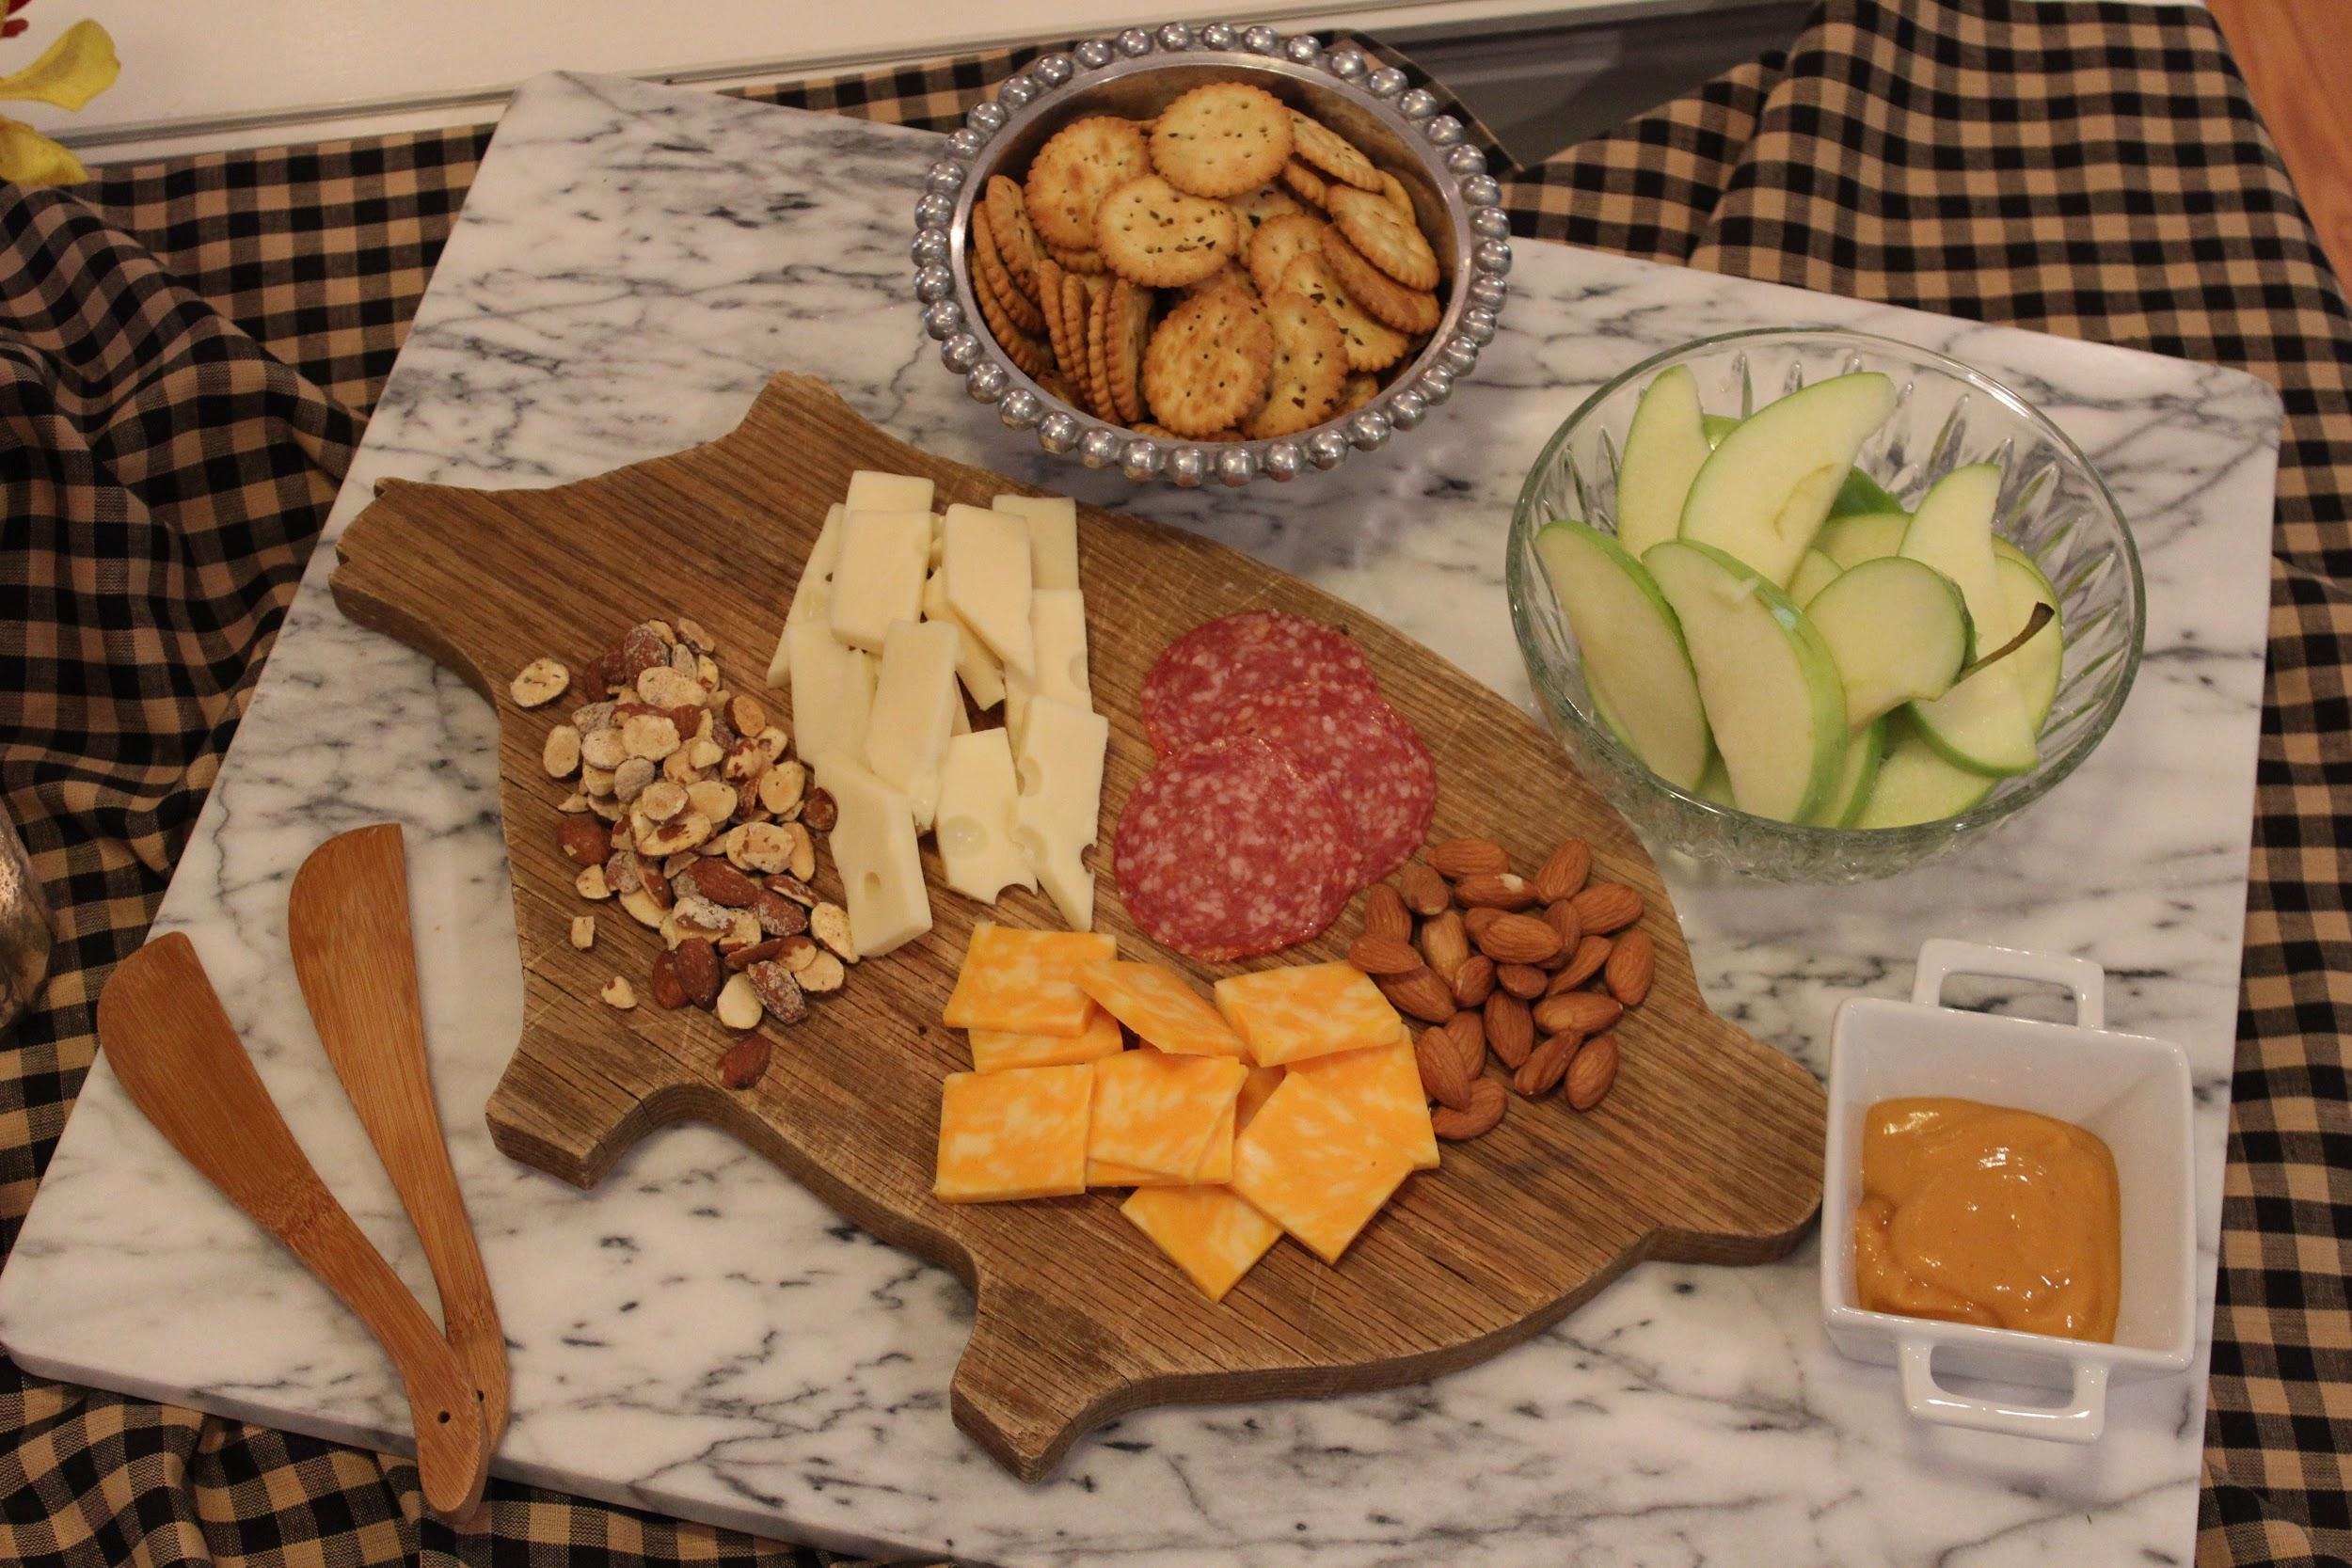 pig shaped cutting board nuts and cheese crackers and apples